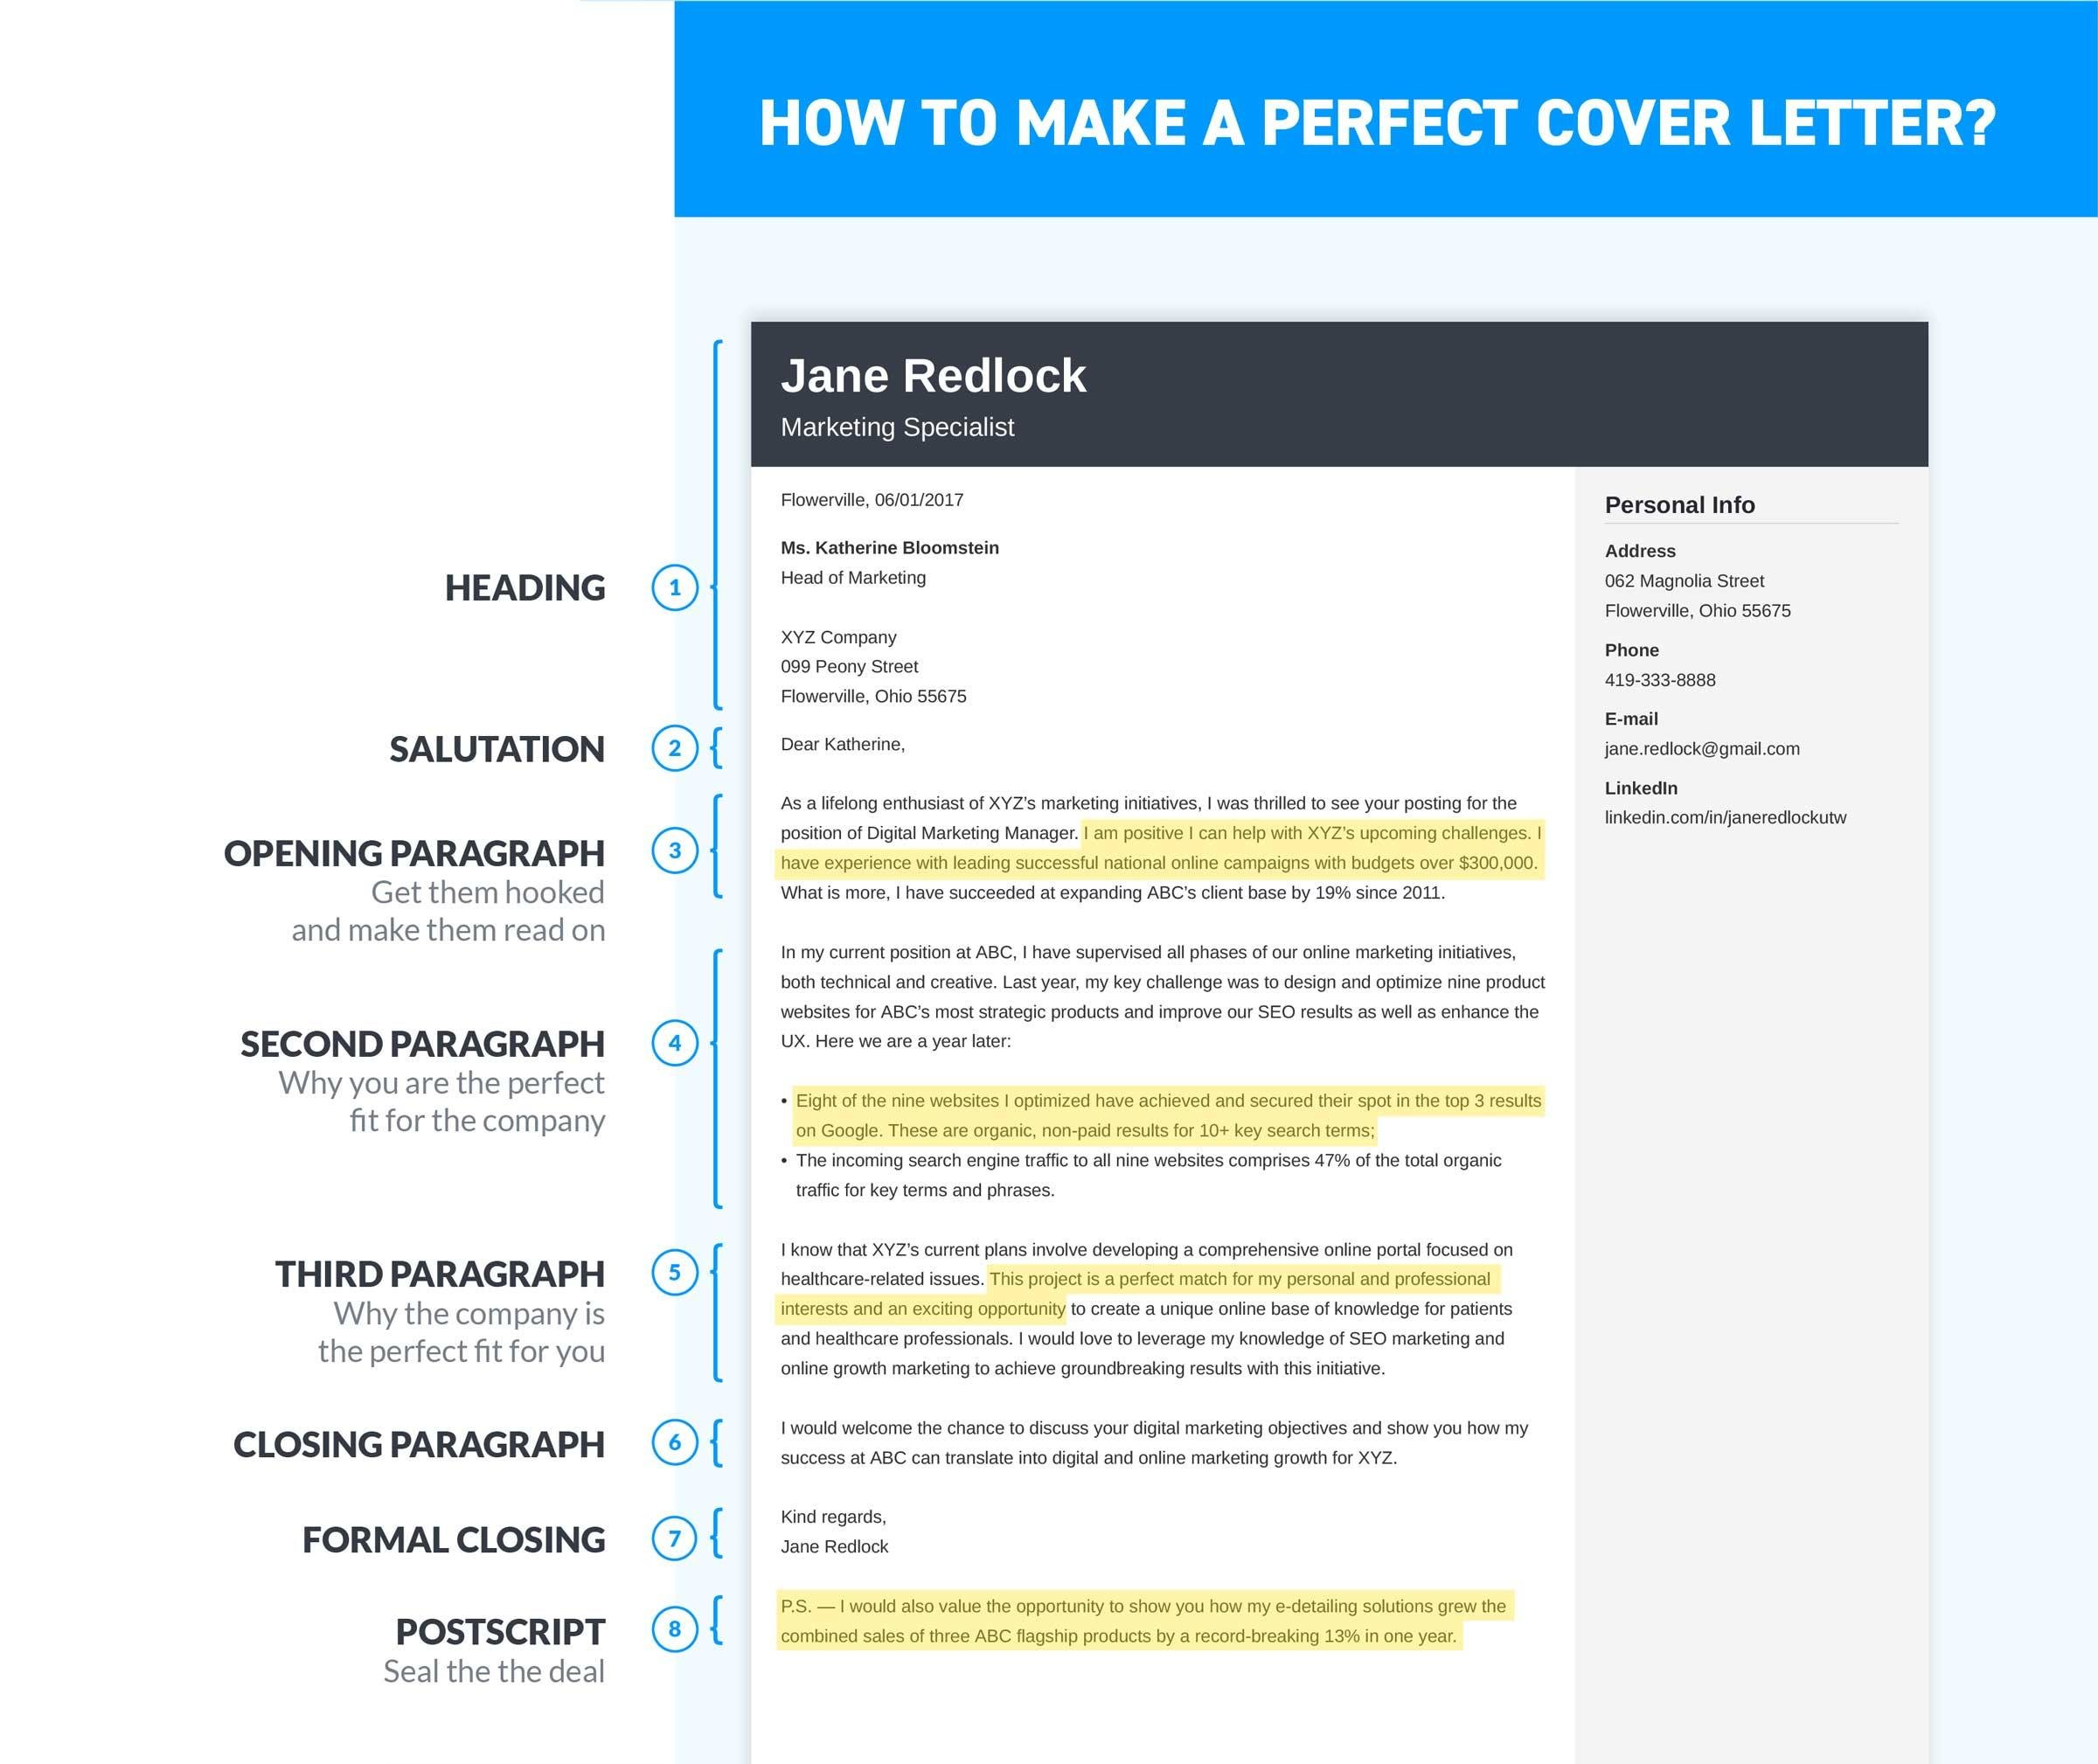 How to write a cover letter in 8 simple steps 12 examples how to make a perfect cover letter infographic madrichimfo Gallery